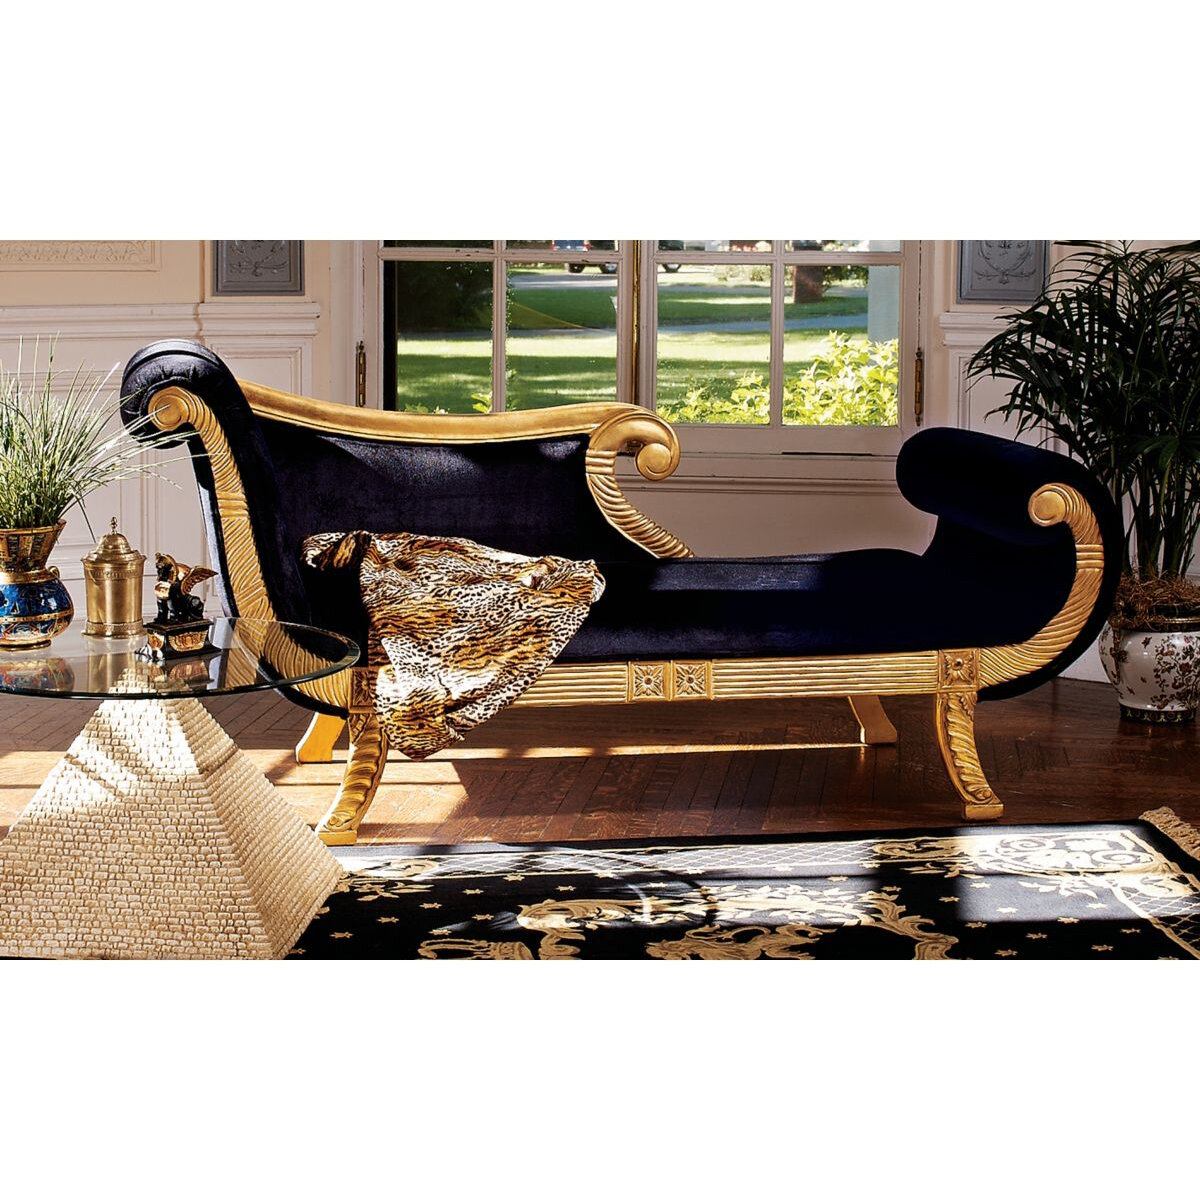 Excellent Cleopatra Neoclassica Chaise Lounge Gmtry Best Dining Table And Chair Ideas Images Gmtryco